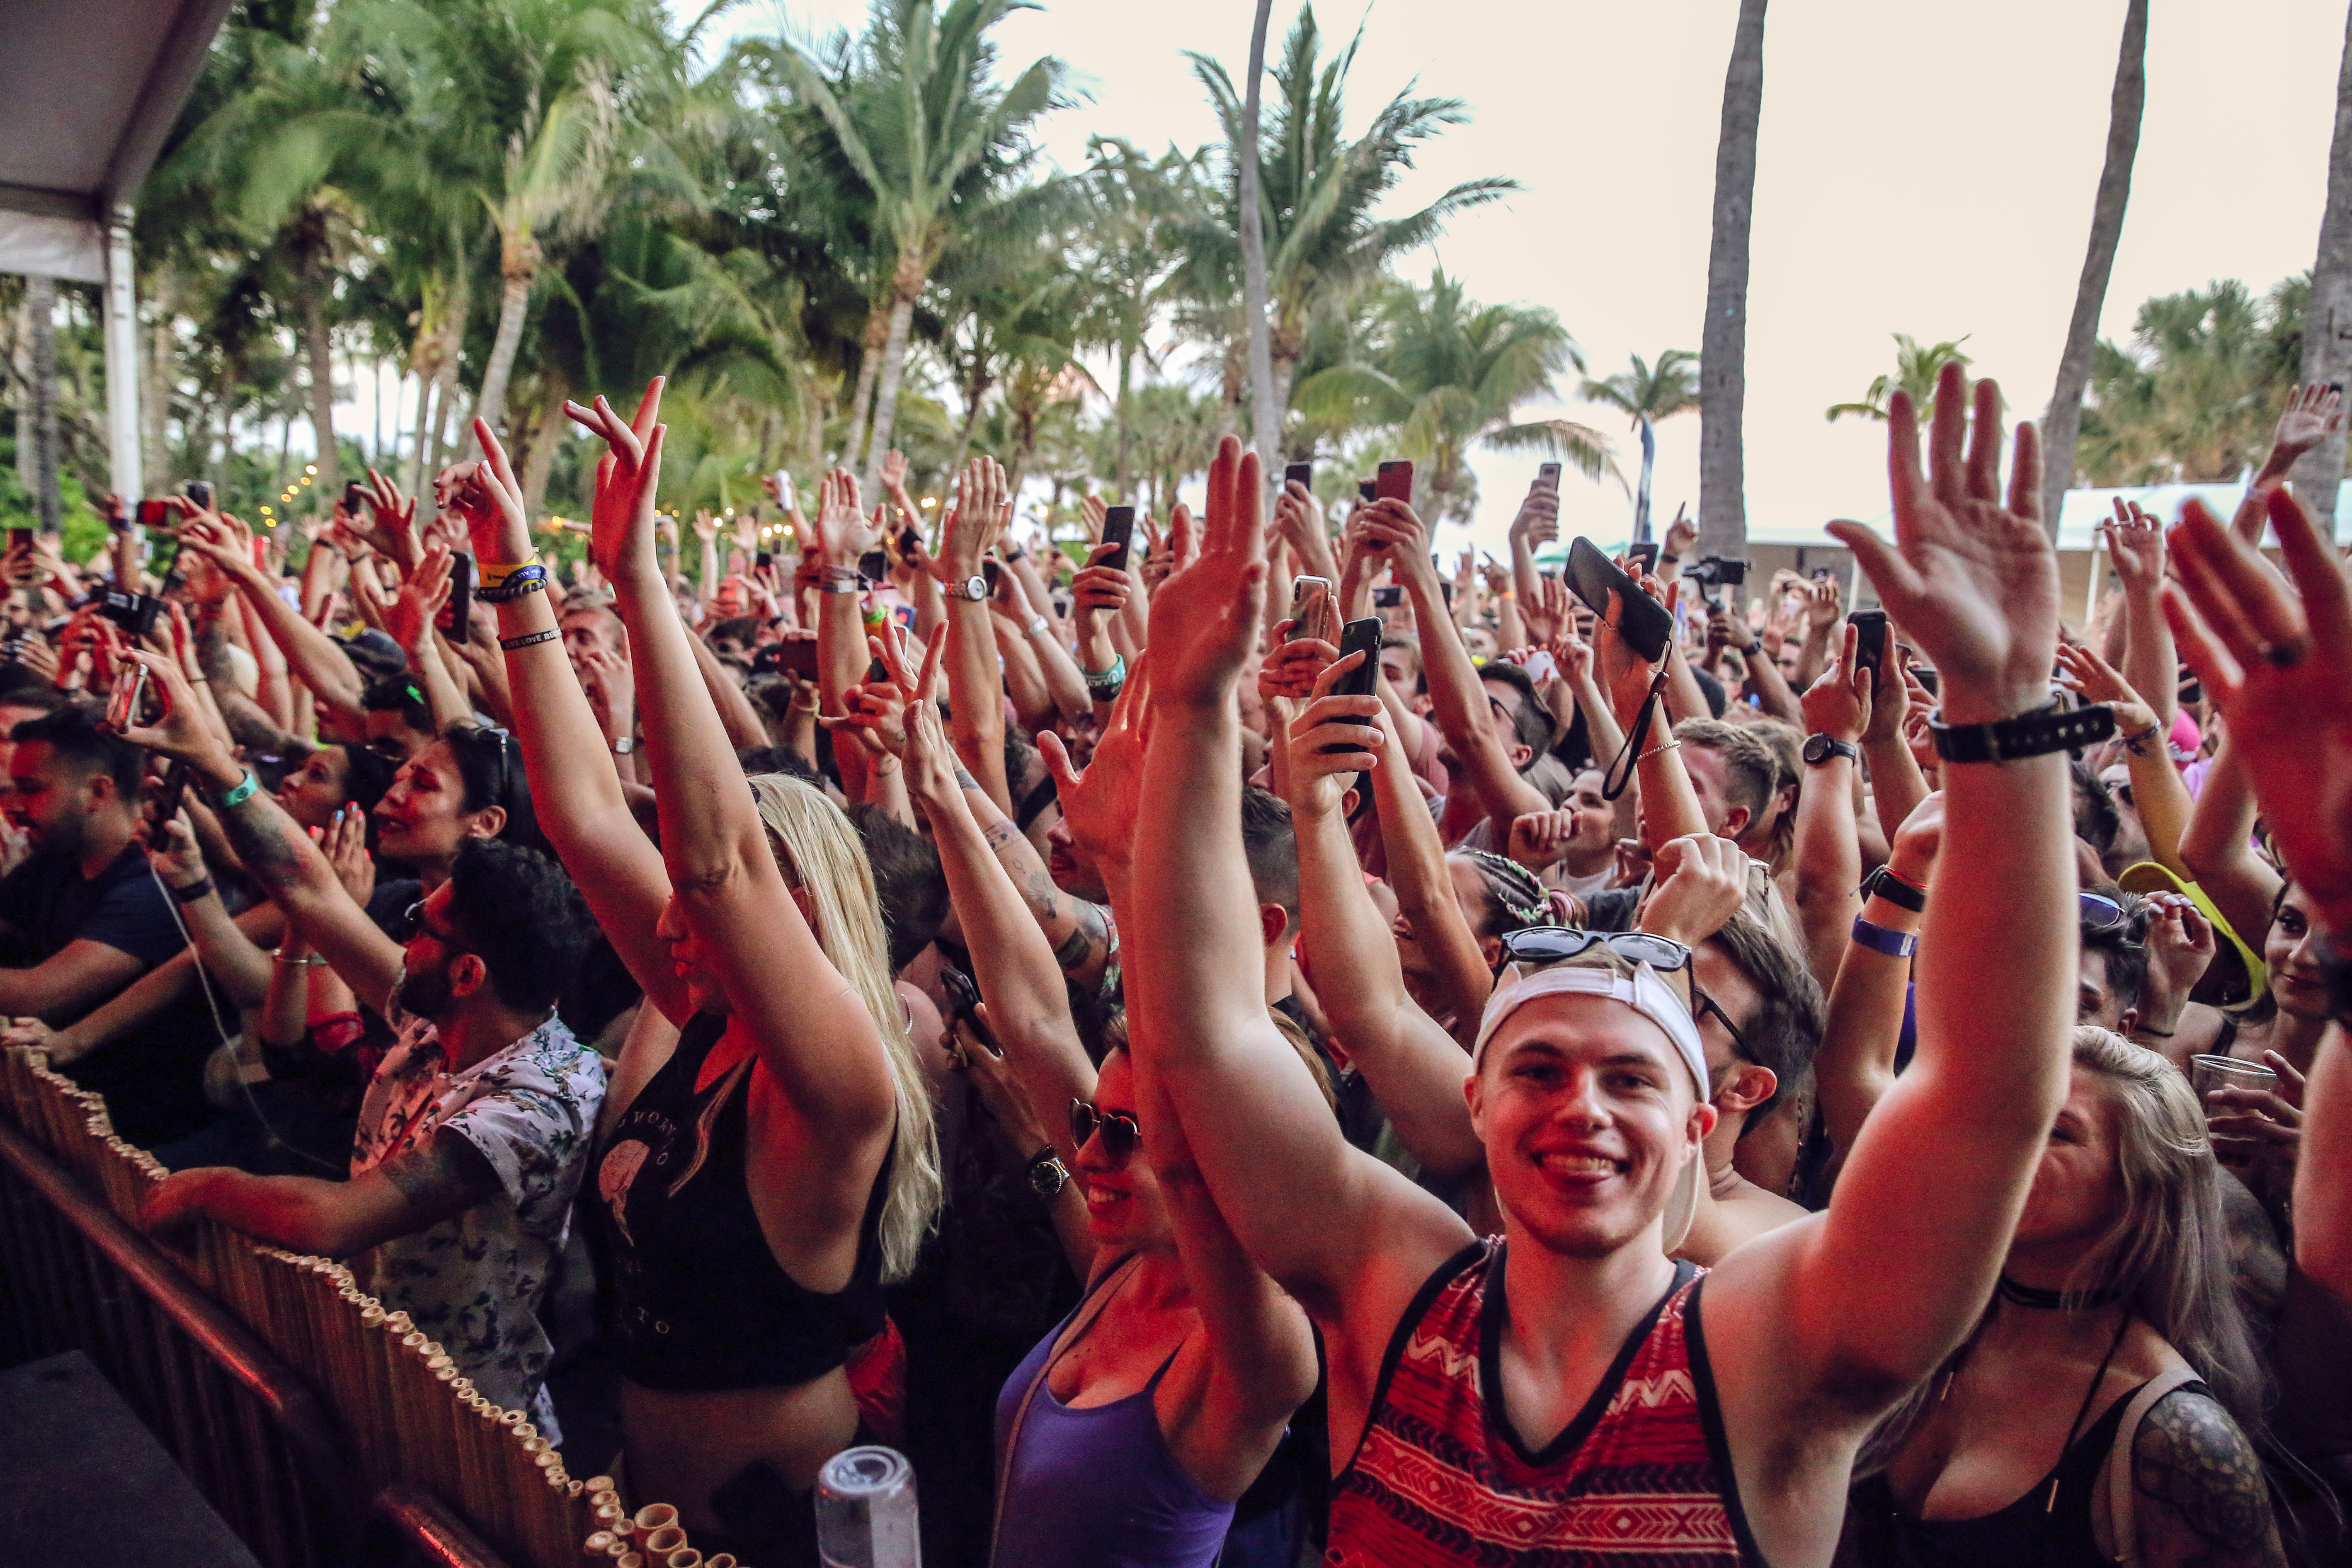 30 insanely amazing snaps from DJ Mag's Miami Pool Party